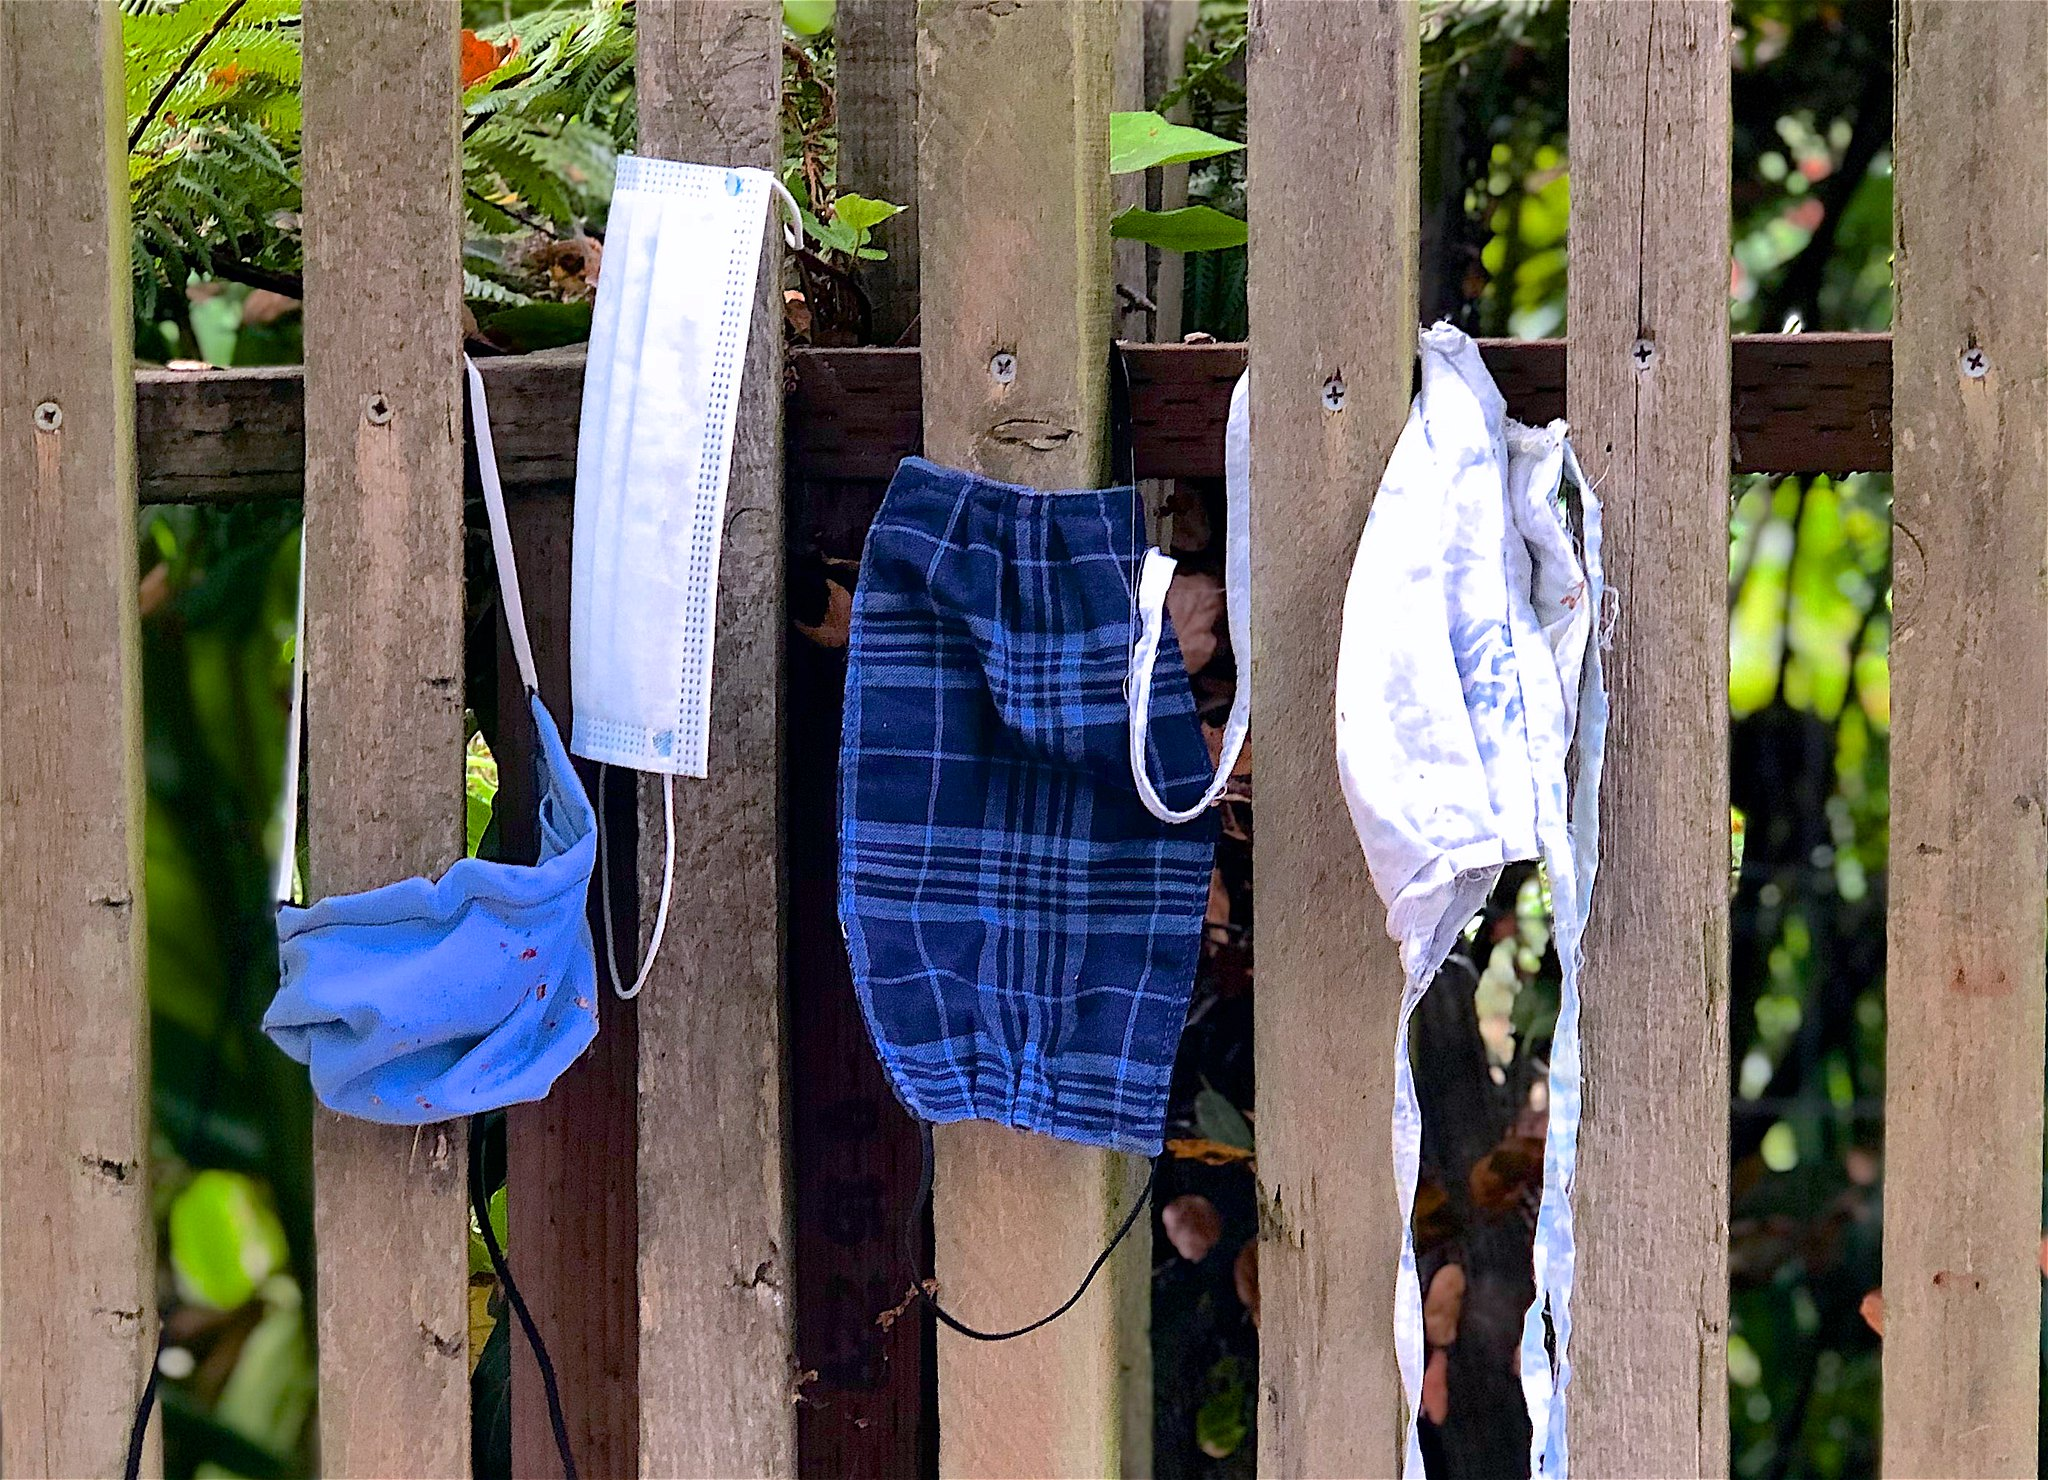 found face masks hanging on wood fence